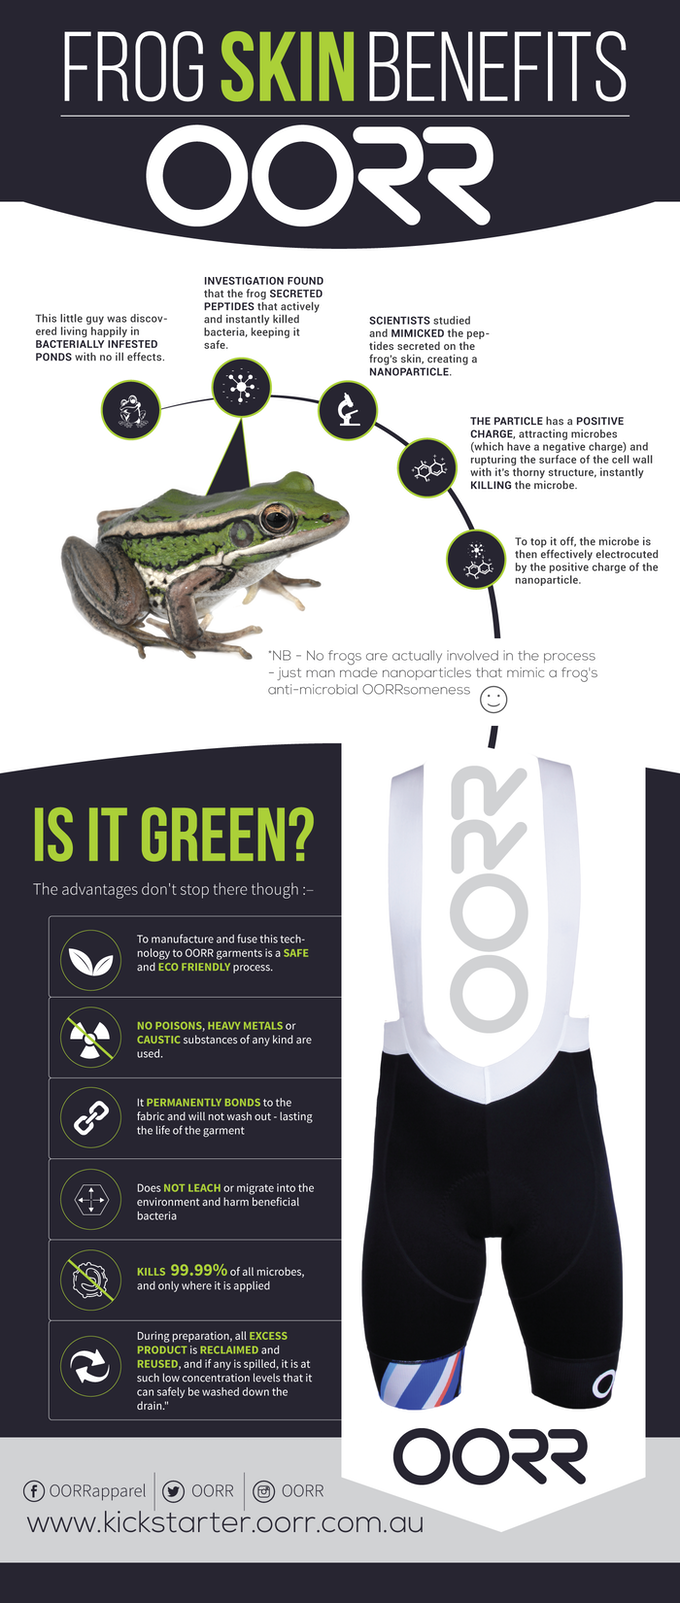 All Cycling Bib Shorts, Socks, Arm and Leg Warmers made with 'Frog Skin' Nanotechnology and include 76% recycled Industrial Nylon